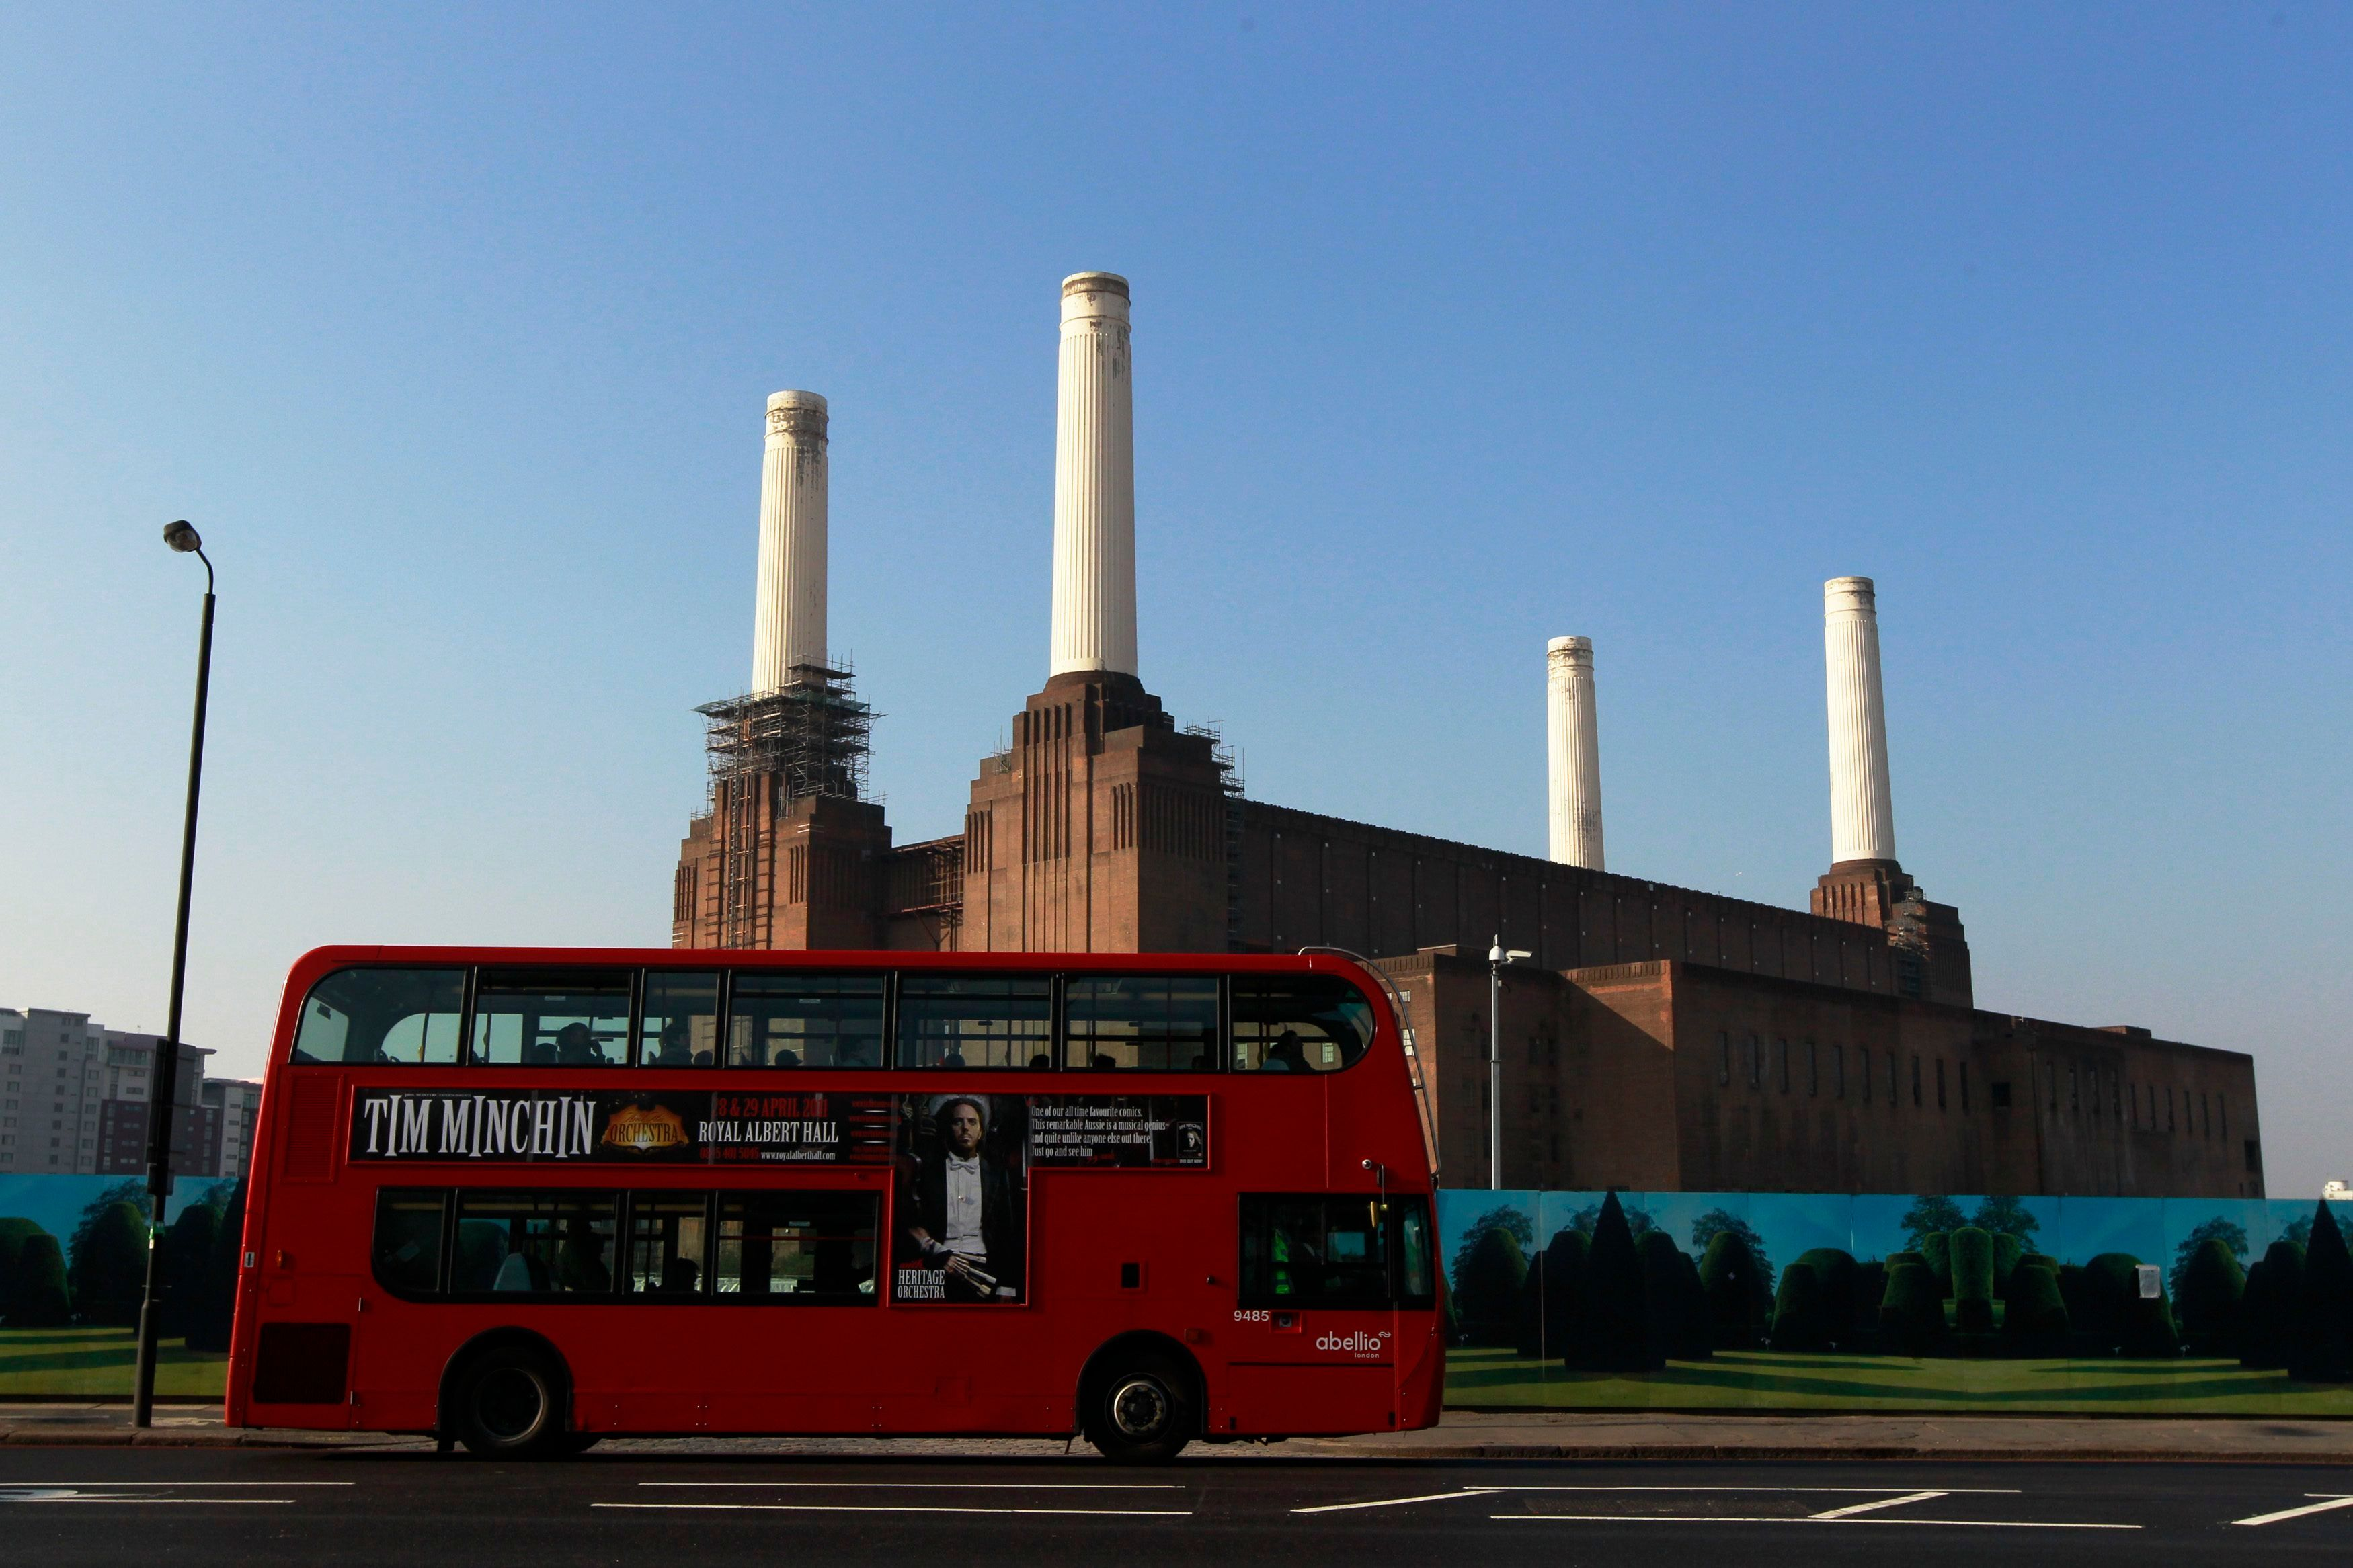 A London bus passes Battersea Power station in London March 8, 2011.    REUTERS/Luke MacGregor  (BRITAIN - Tags: CITYSCAPE SOCIETY TRAVEL)